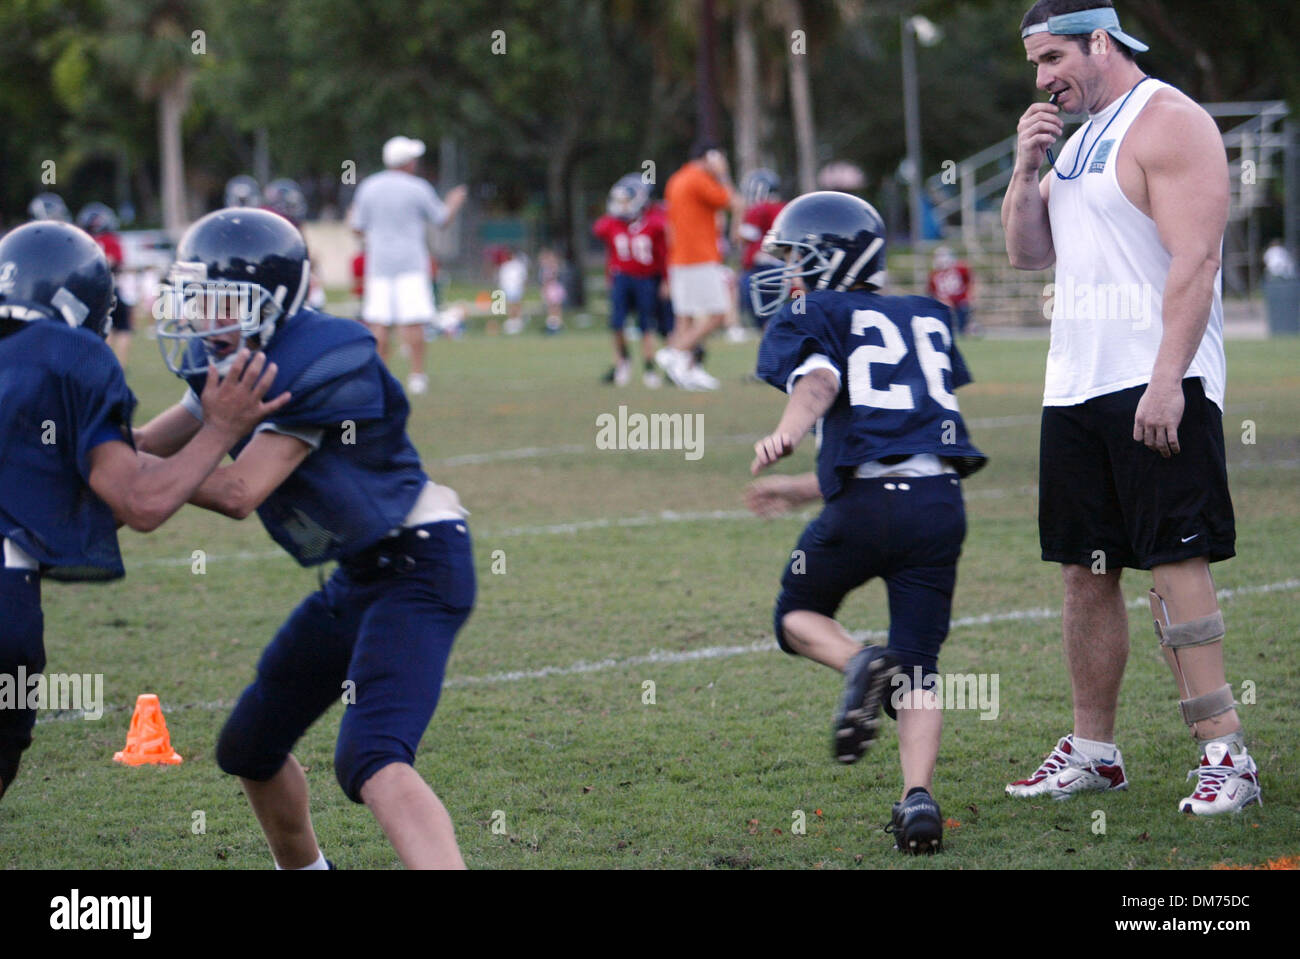 Sep 28, 2005; Boca Raton, FL, USA; Rick Busacca  (far right) is the defensive coordinator of the Boca Jets youth - Stock Image